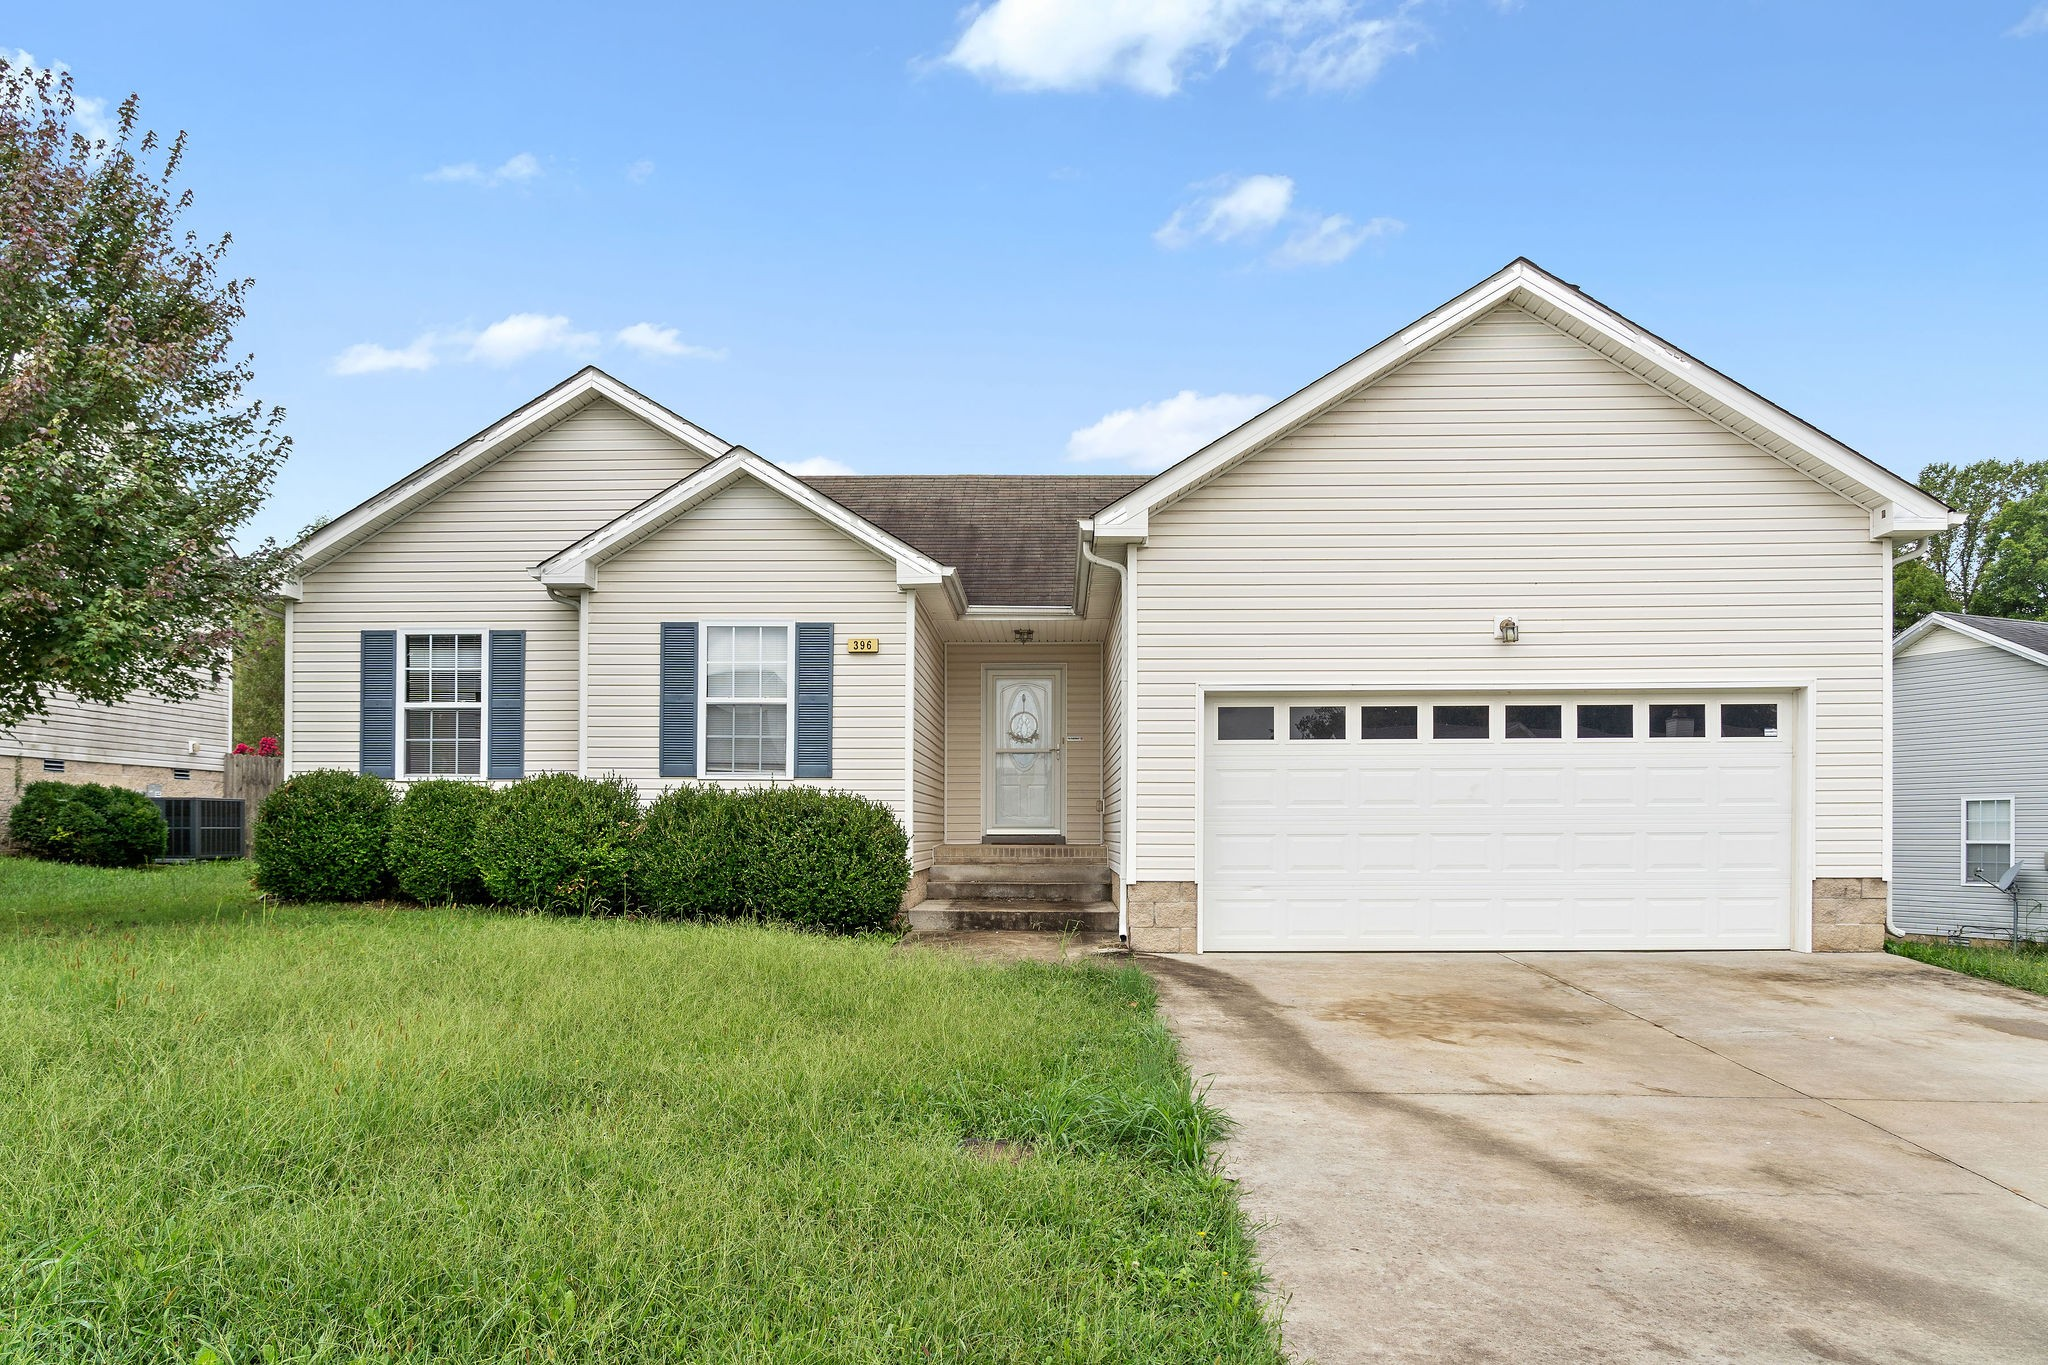 Ranch home located in cul-de-sac with large fenced in yard, wood burning fireplace and vaulted ceilings. Home has walk-in closets, eat-in kitchen with pantry, under ground utilities and much more. Home has been freshly painted.  Home is close to Ft. Campbell, shopping and restaurants.